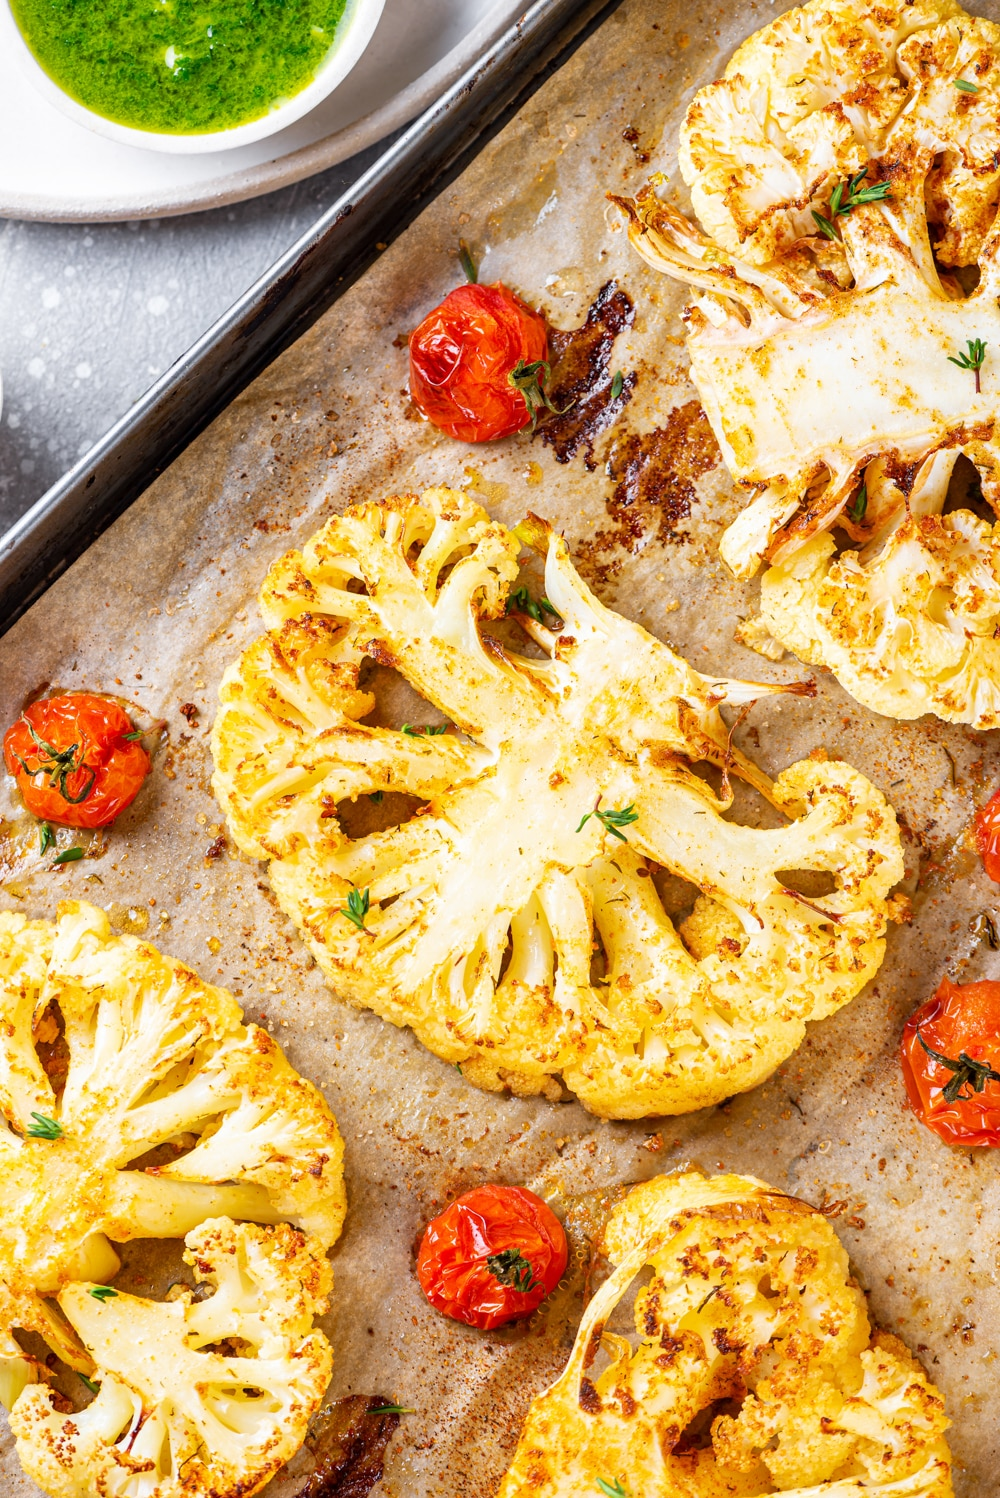 A close up view of one whole cauliflower steak with a half of a cauliflower steak on each side of it. There are four cherry tomatoes spaced evenly around the steaks. Everything is on a baking sheet lined with parchment paper.